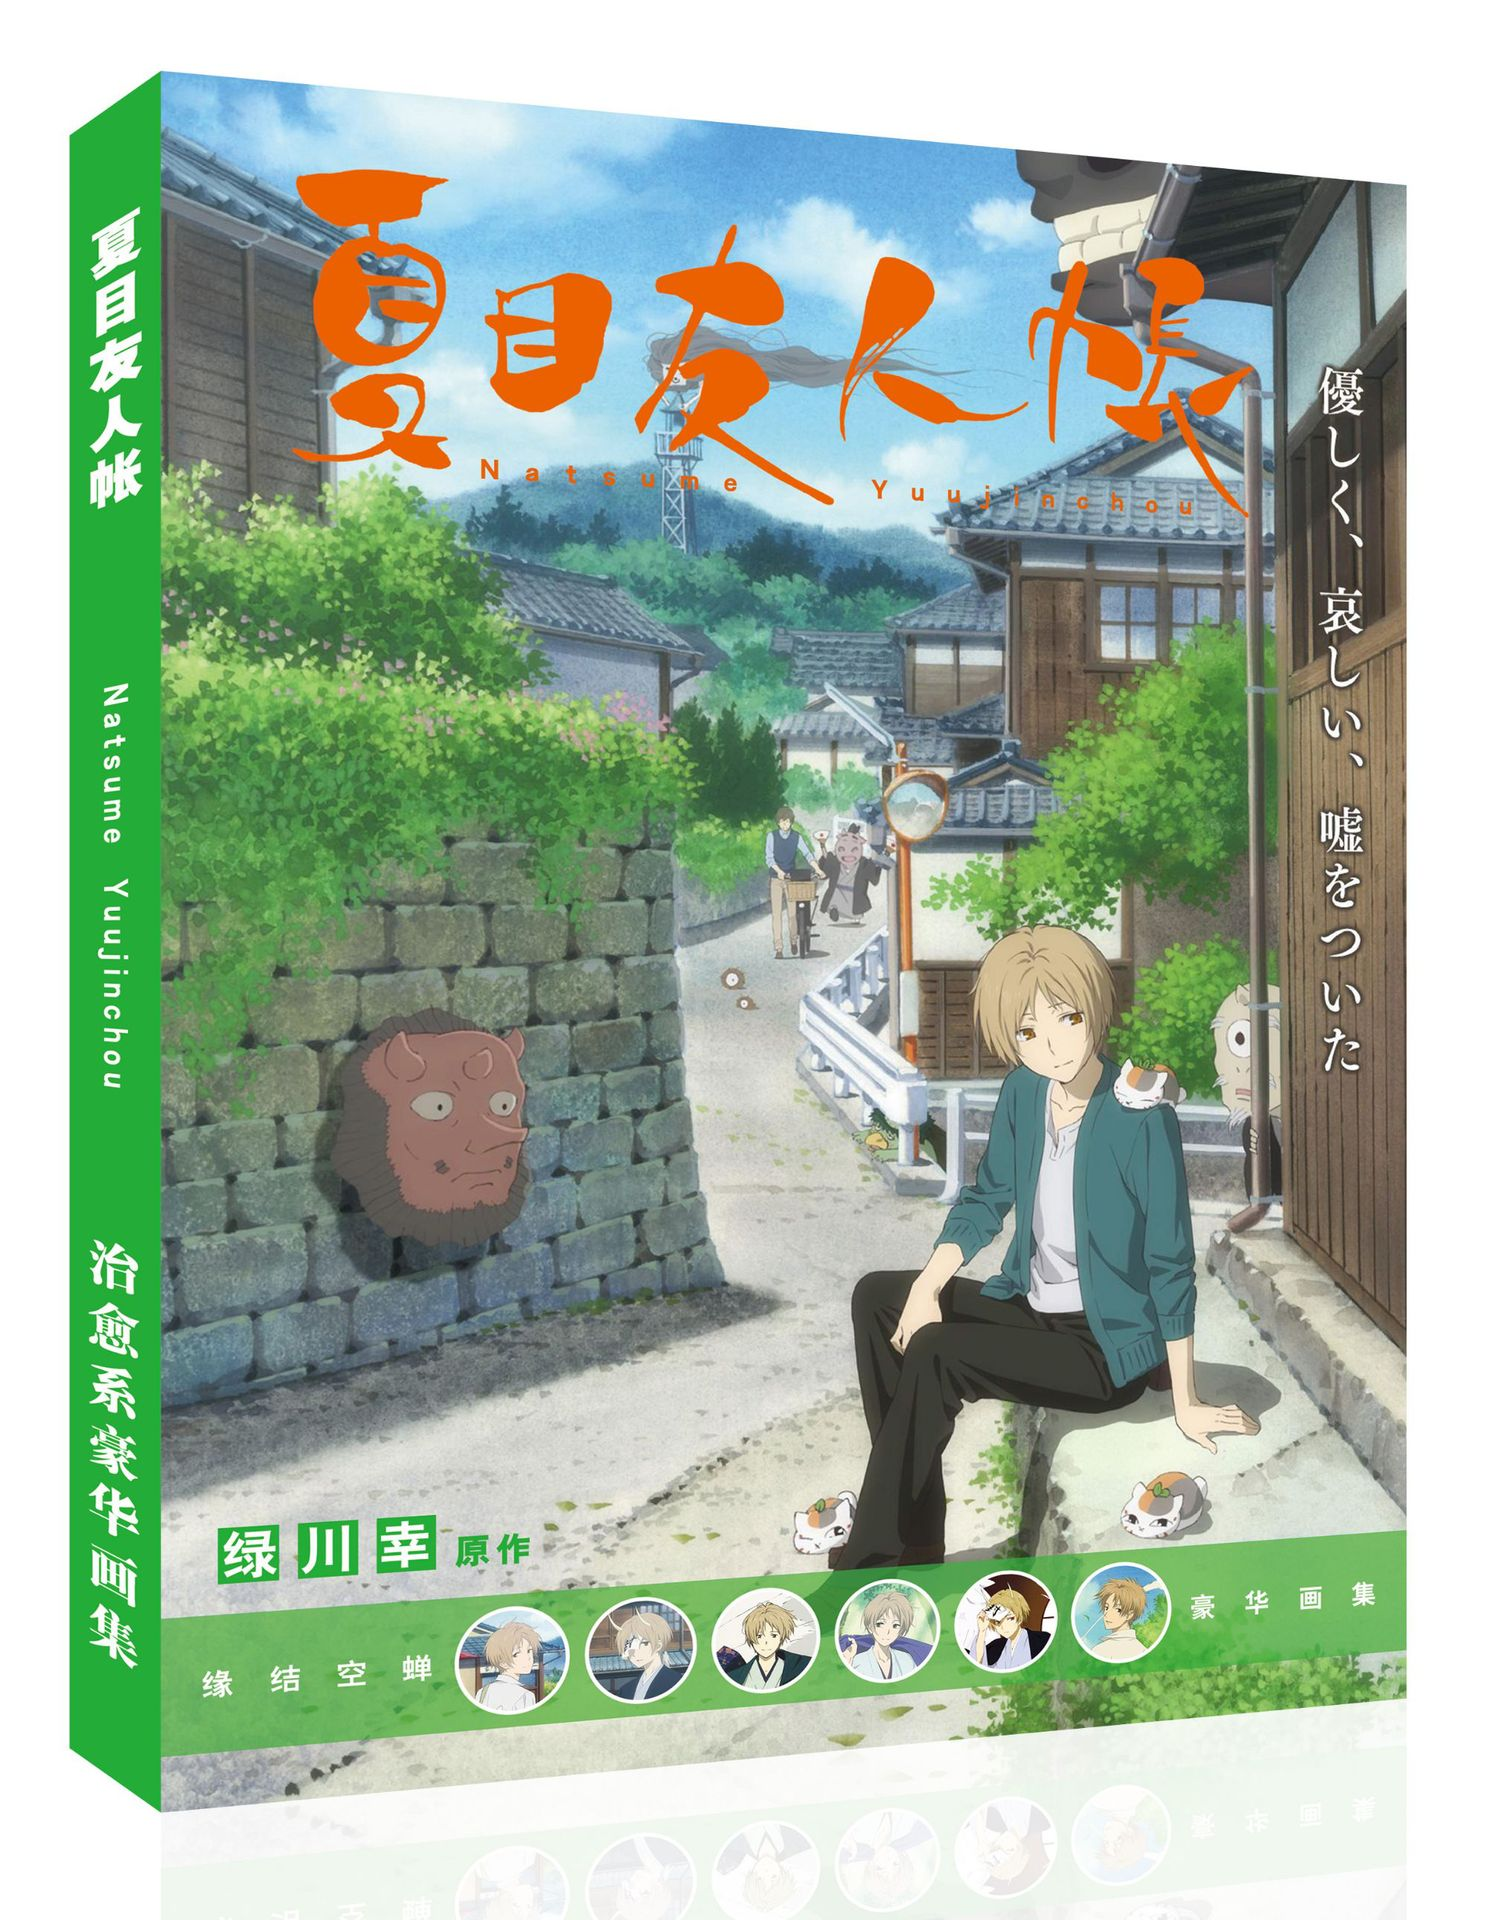 Natsume's Book of Friends Art Book Takashi Natsume Cat Fanart Catalog Brochure Illustrations Artbook Album Pictures Gift Cosplay